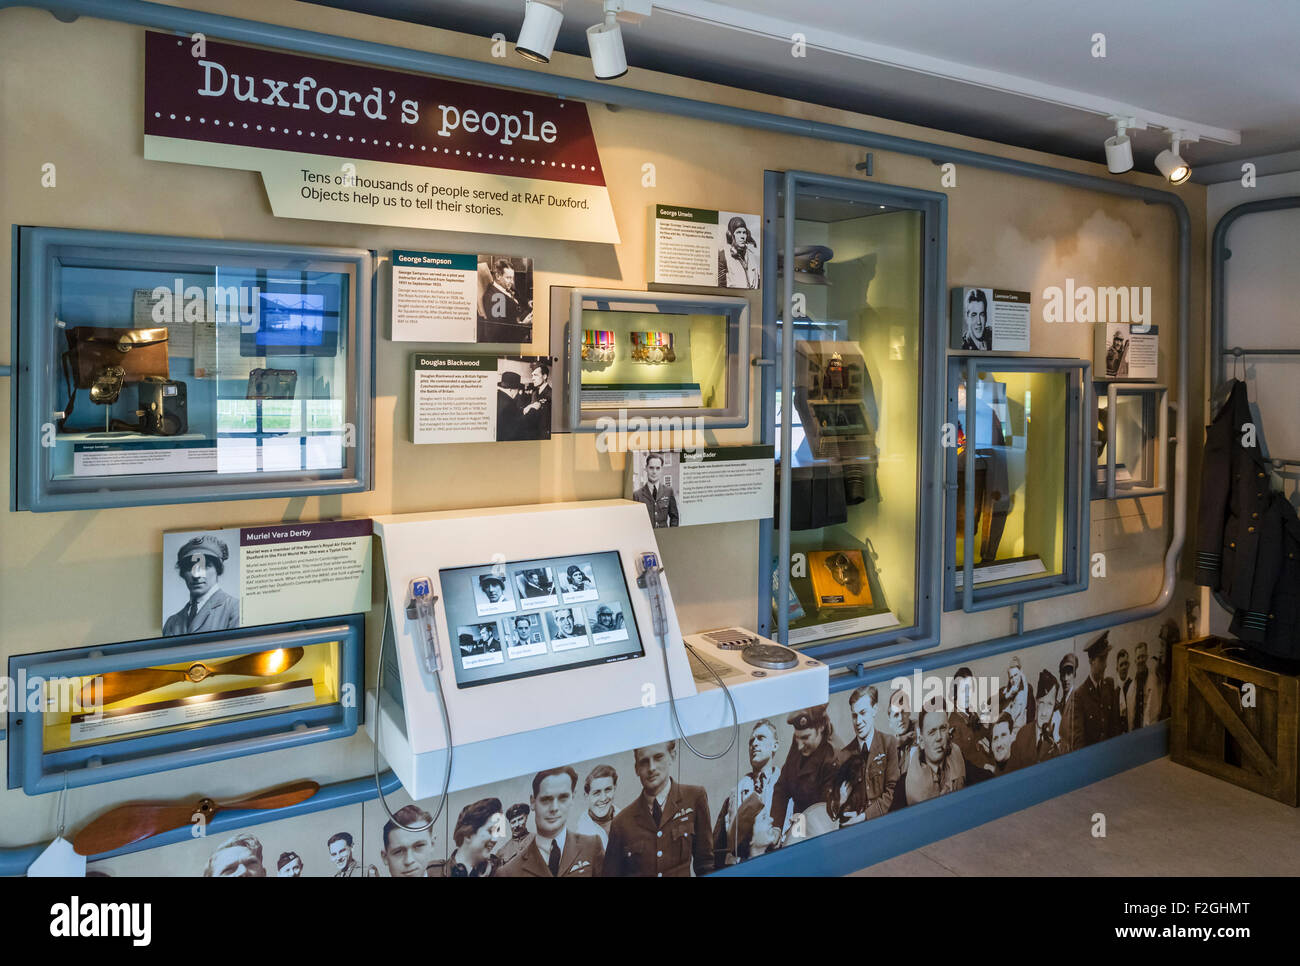 'Historic Duxford', a display commemorating those who served at RAF Duxford, Imperial War Museum, Duxford, - Stock Image